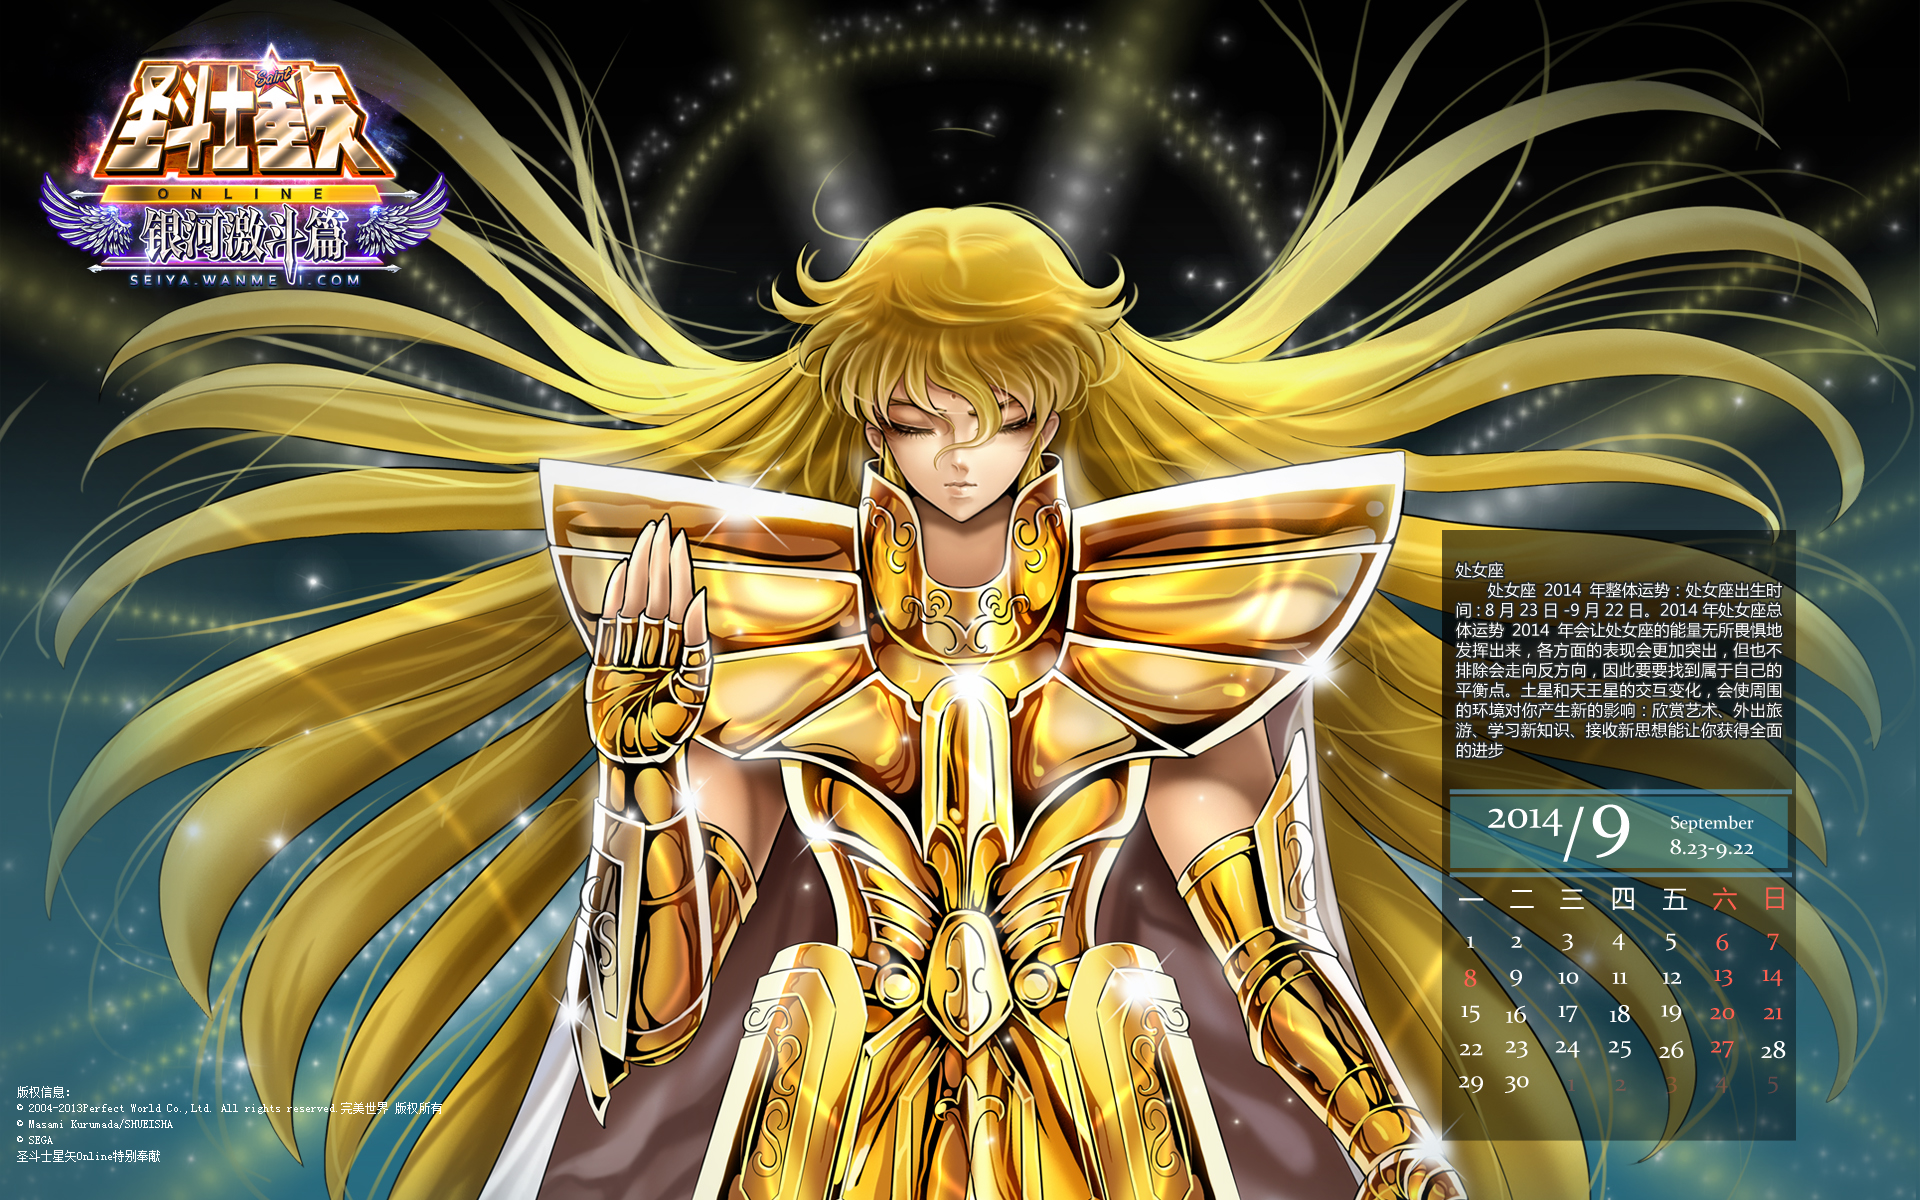 Virgo Shaka , Saint Seiya , Wallpaper 1910057 , Zerochan